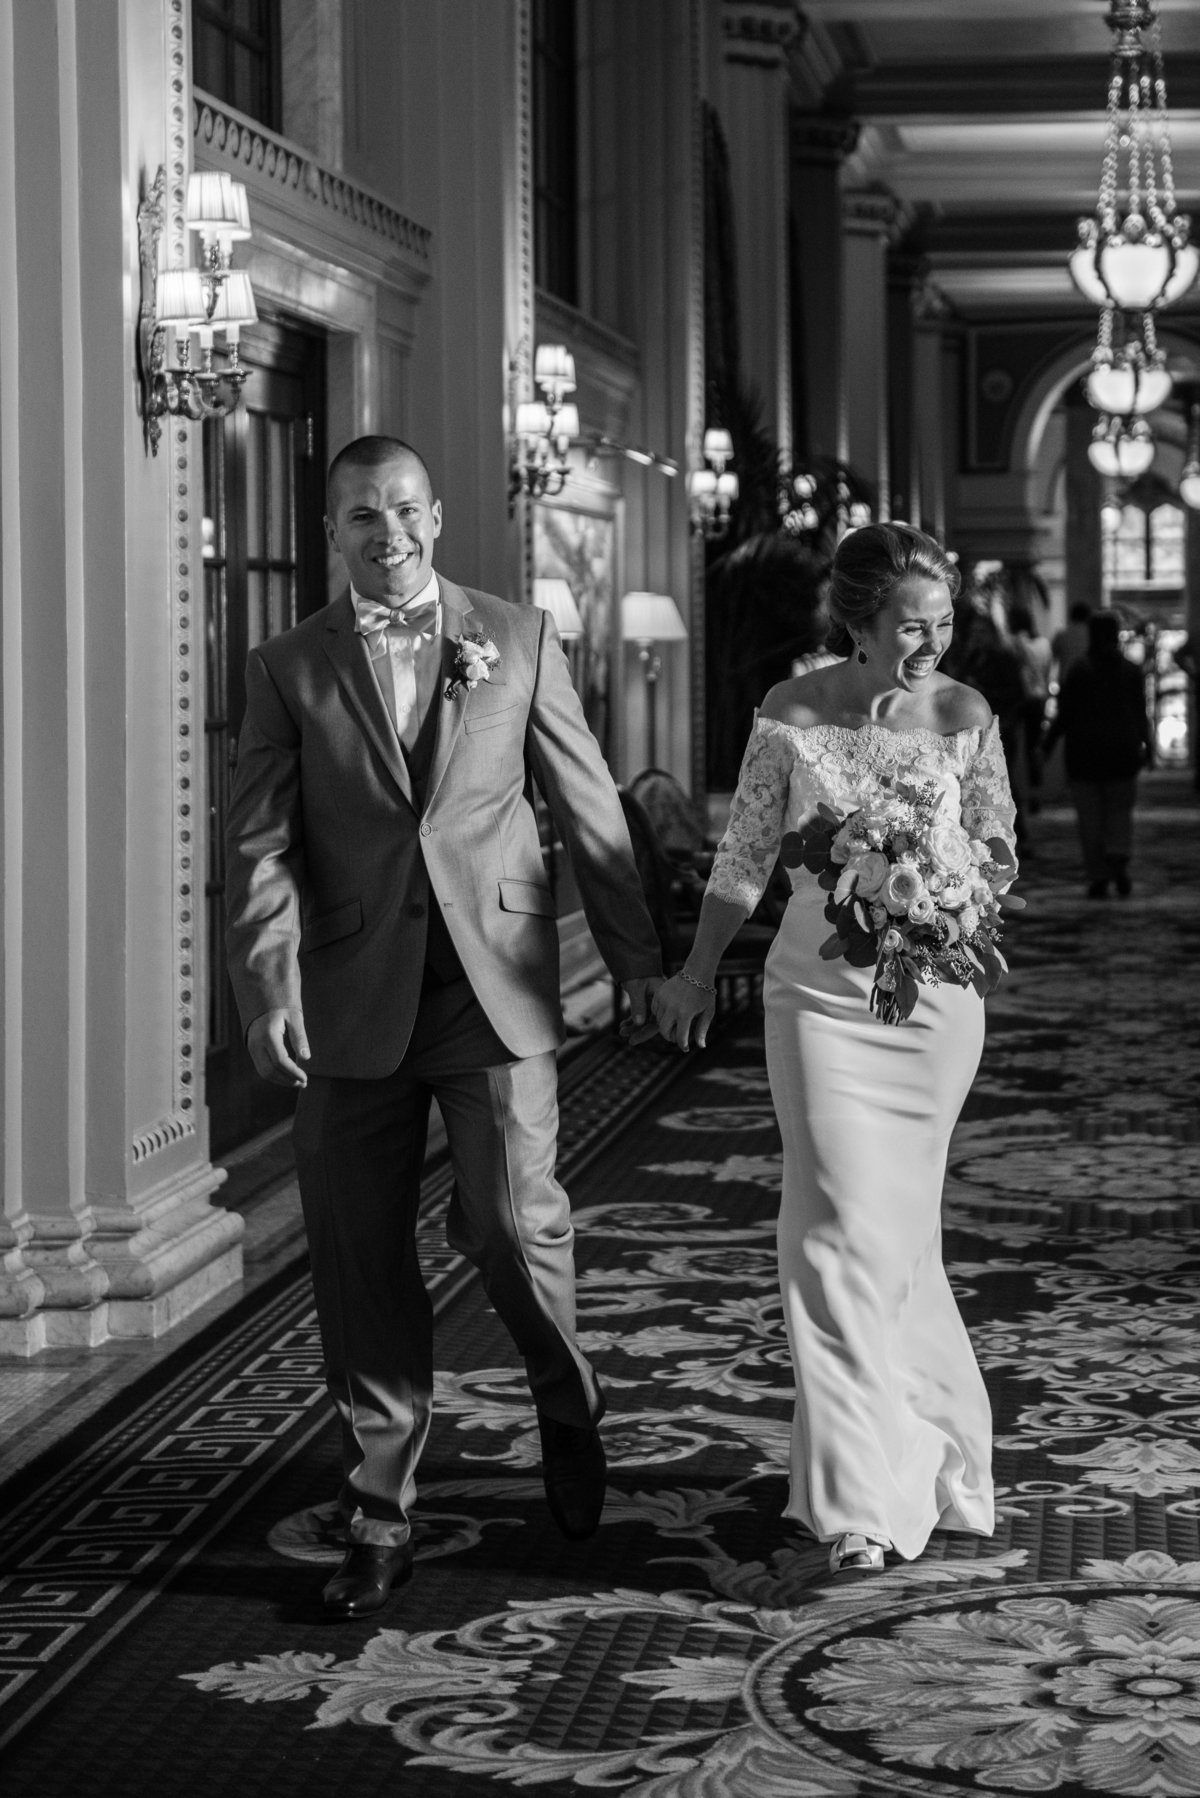 Willard Wedding by Washington DC Wedding Photographer, Erin Tetterton Photography